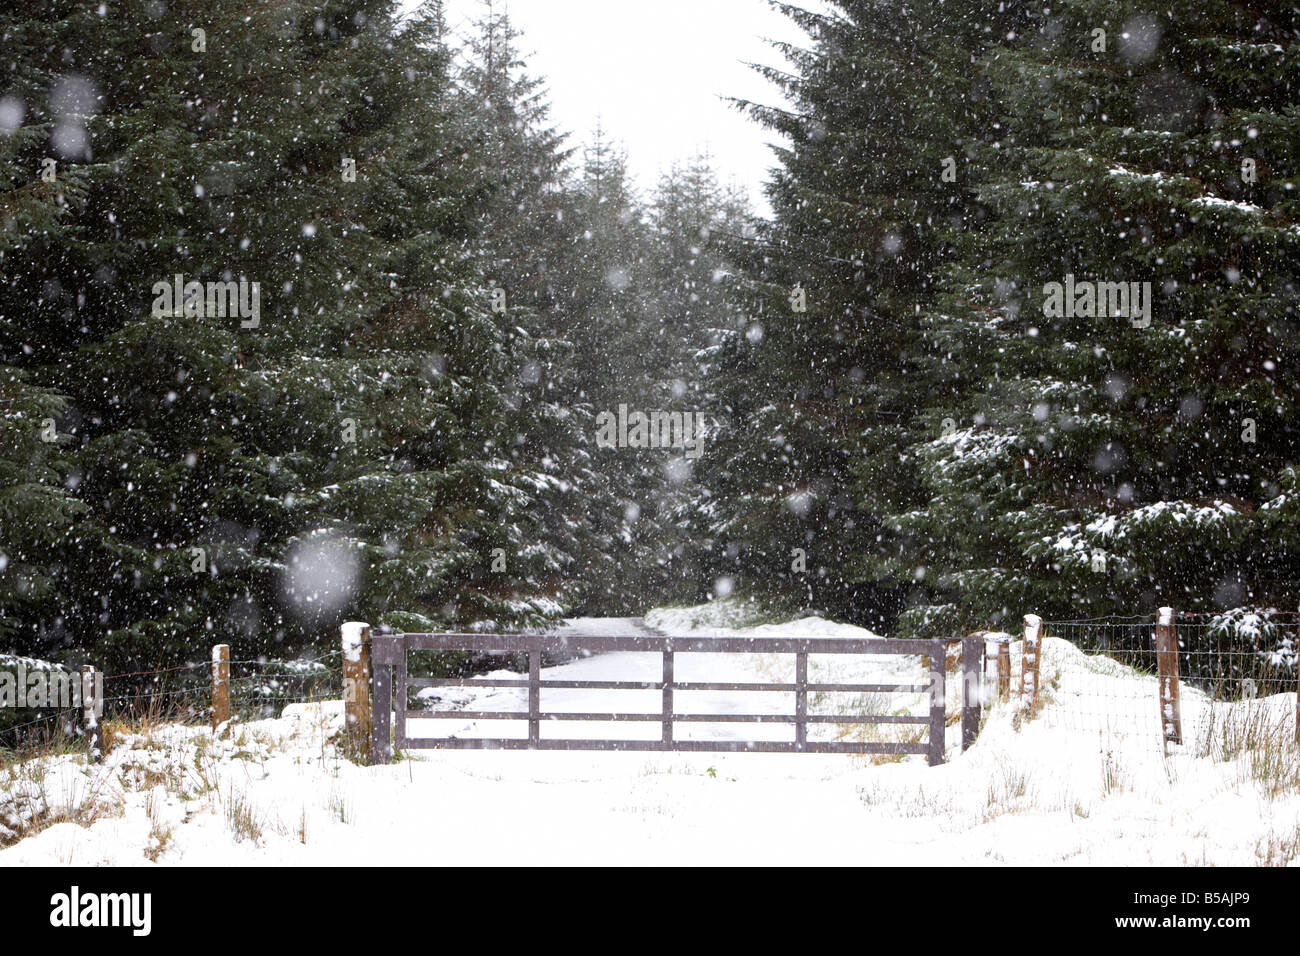 gate entrance to Slieveanorra forest county antrim northern ireland uk - Stock Image